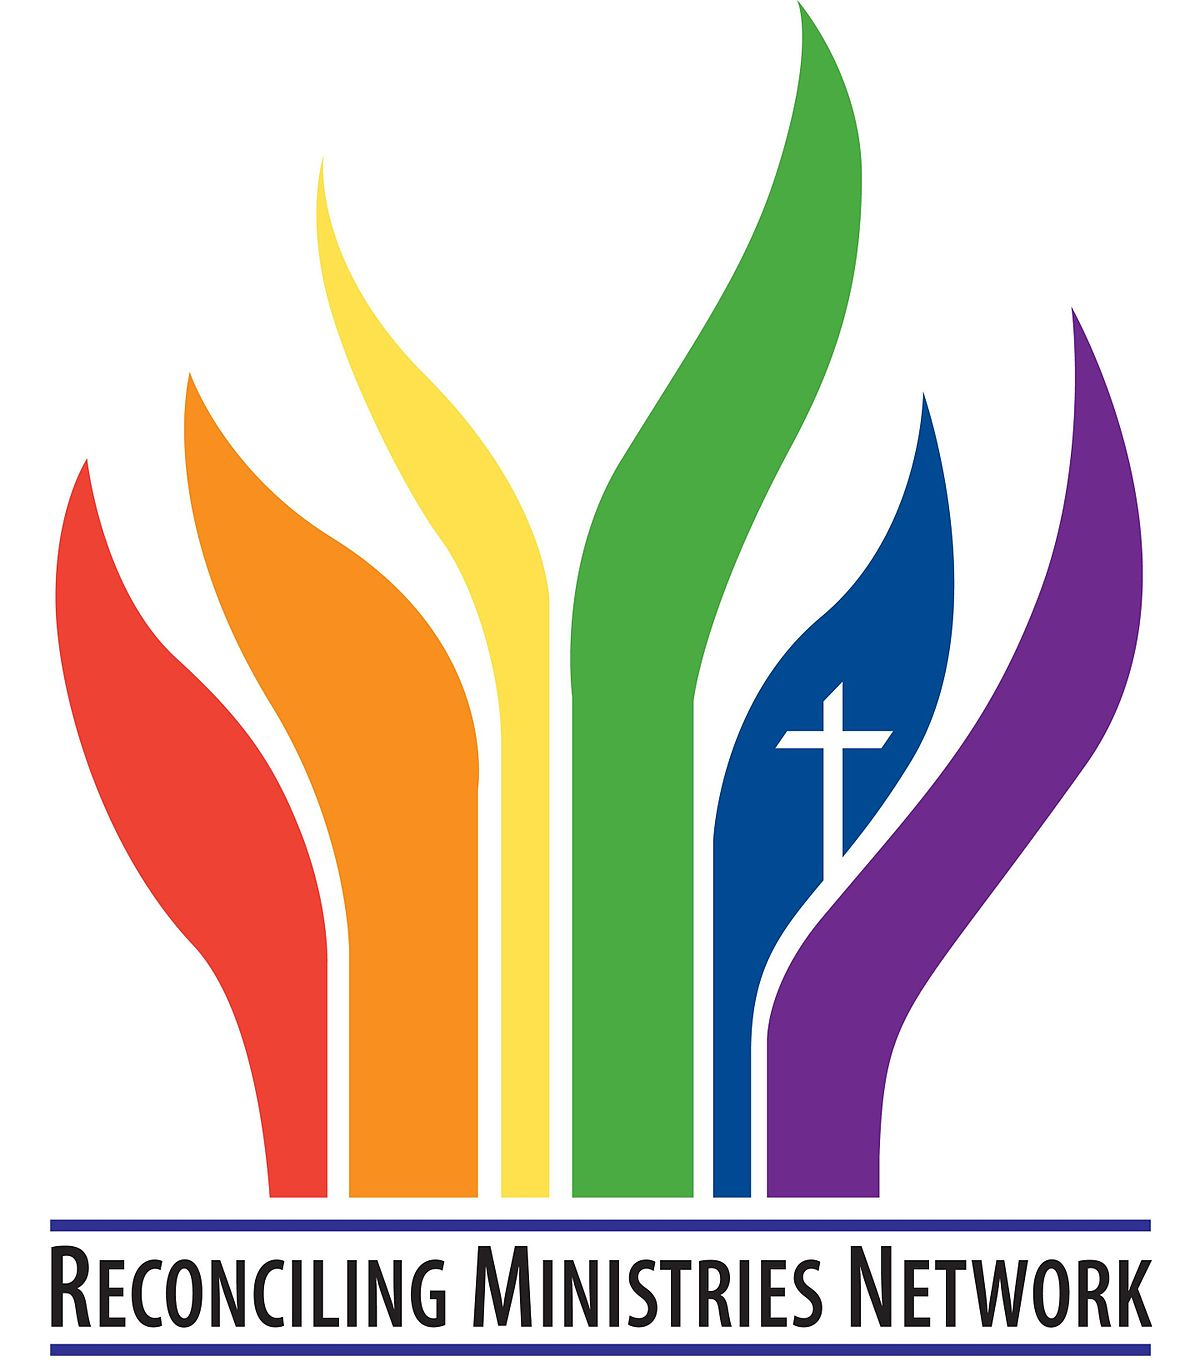 Reconciling-Ministries-Network-Logo 2.jpg